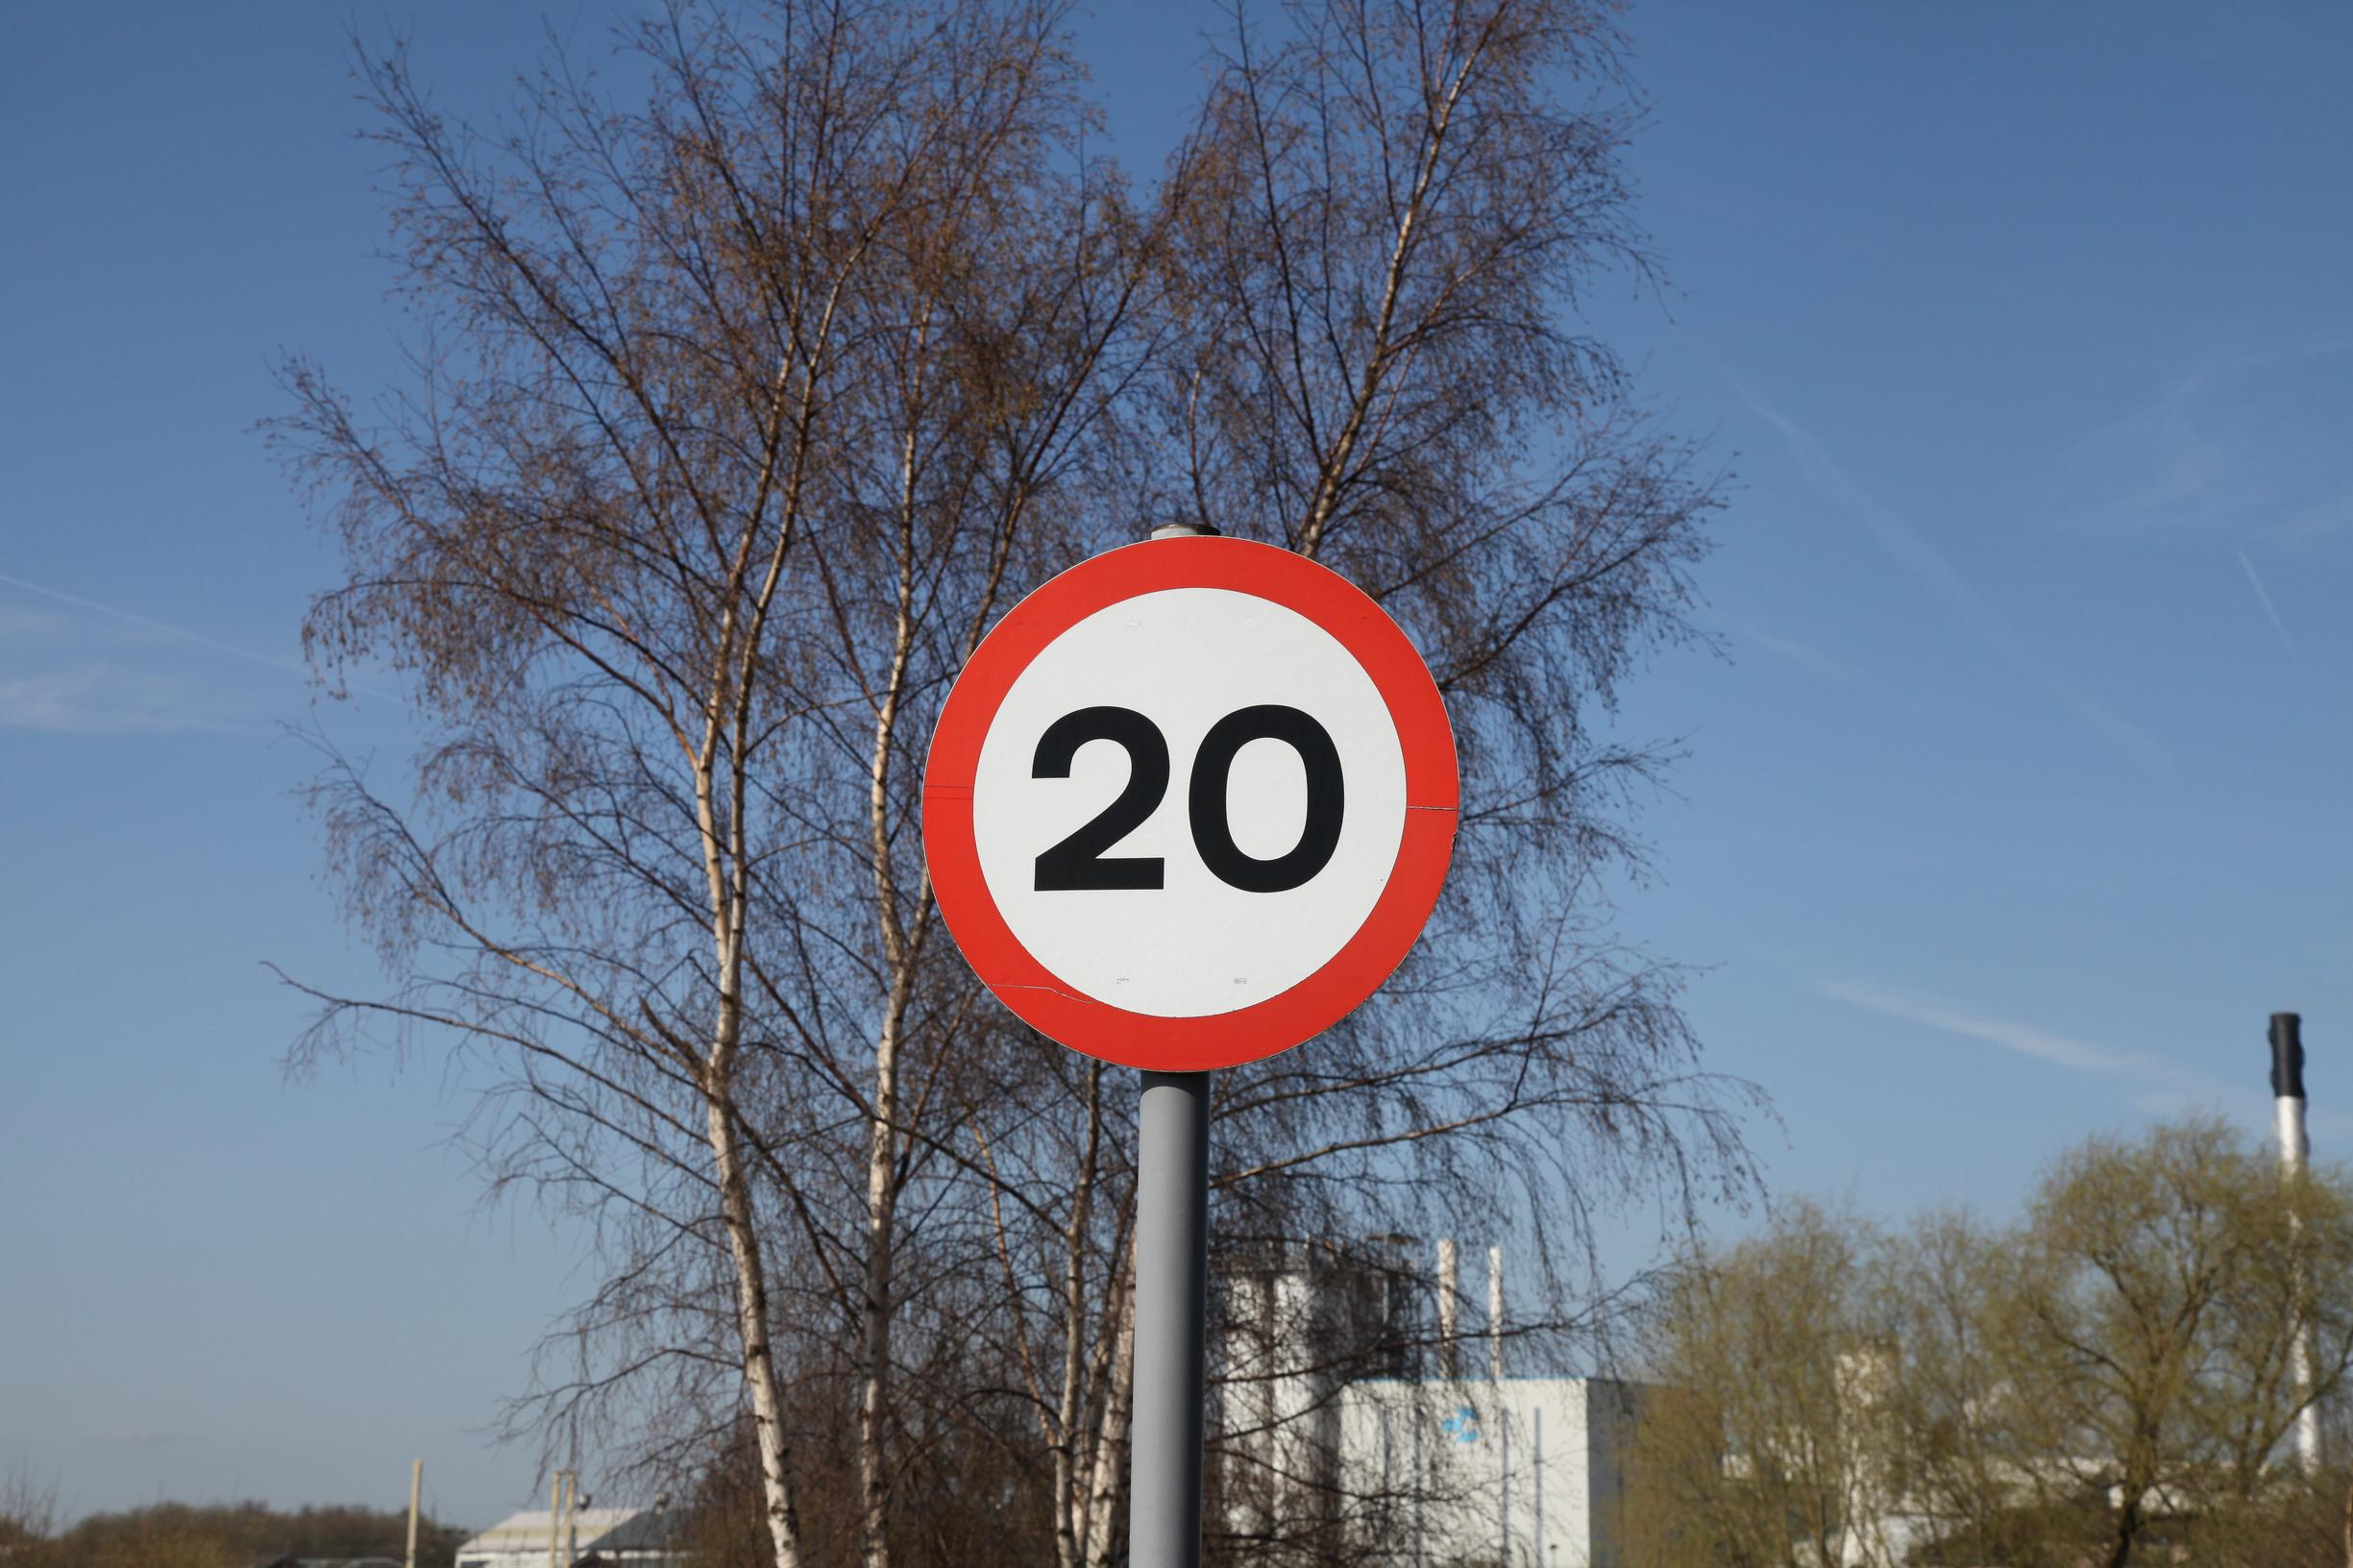 Calls for the civil enforcement of speed limits have increased as the coverage of signed-only 20mph limits has grown